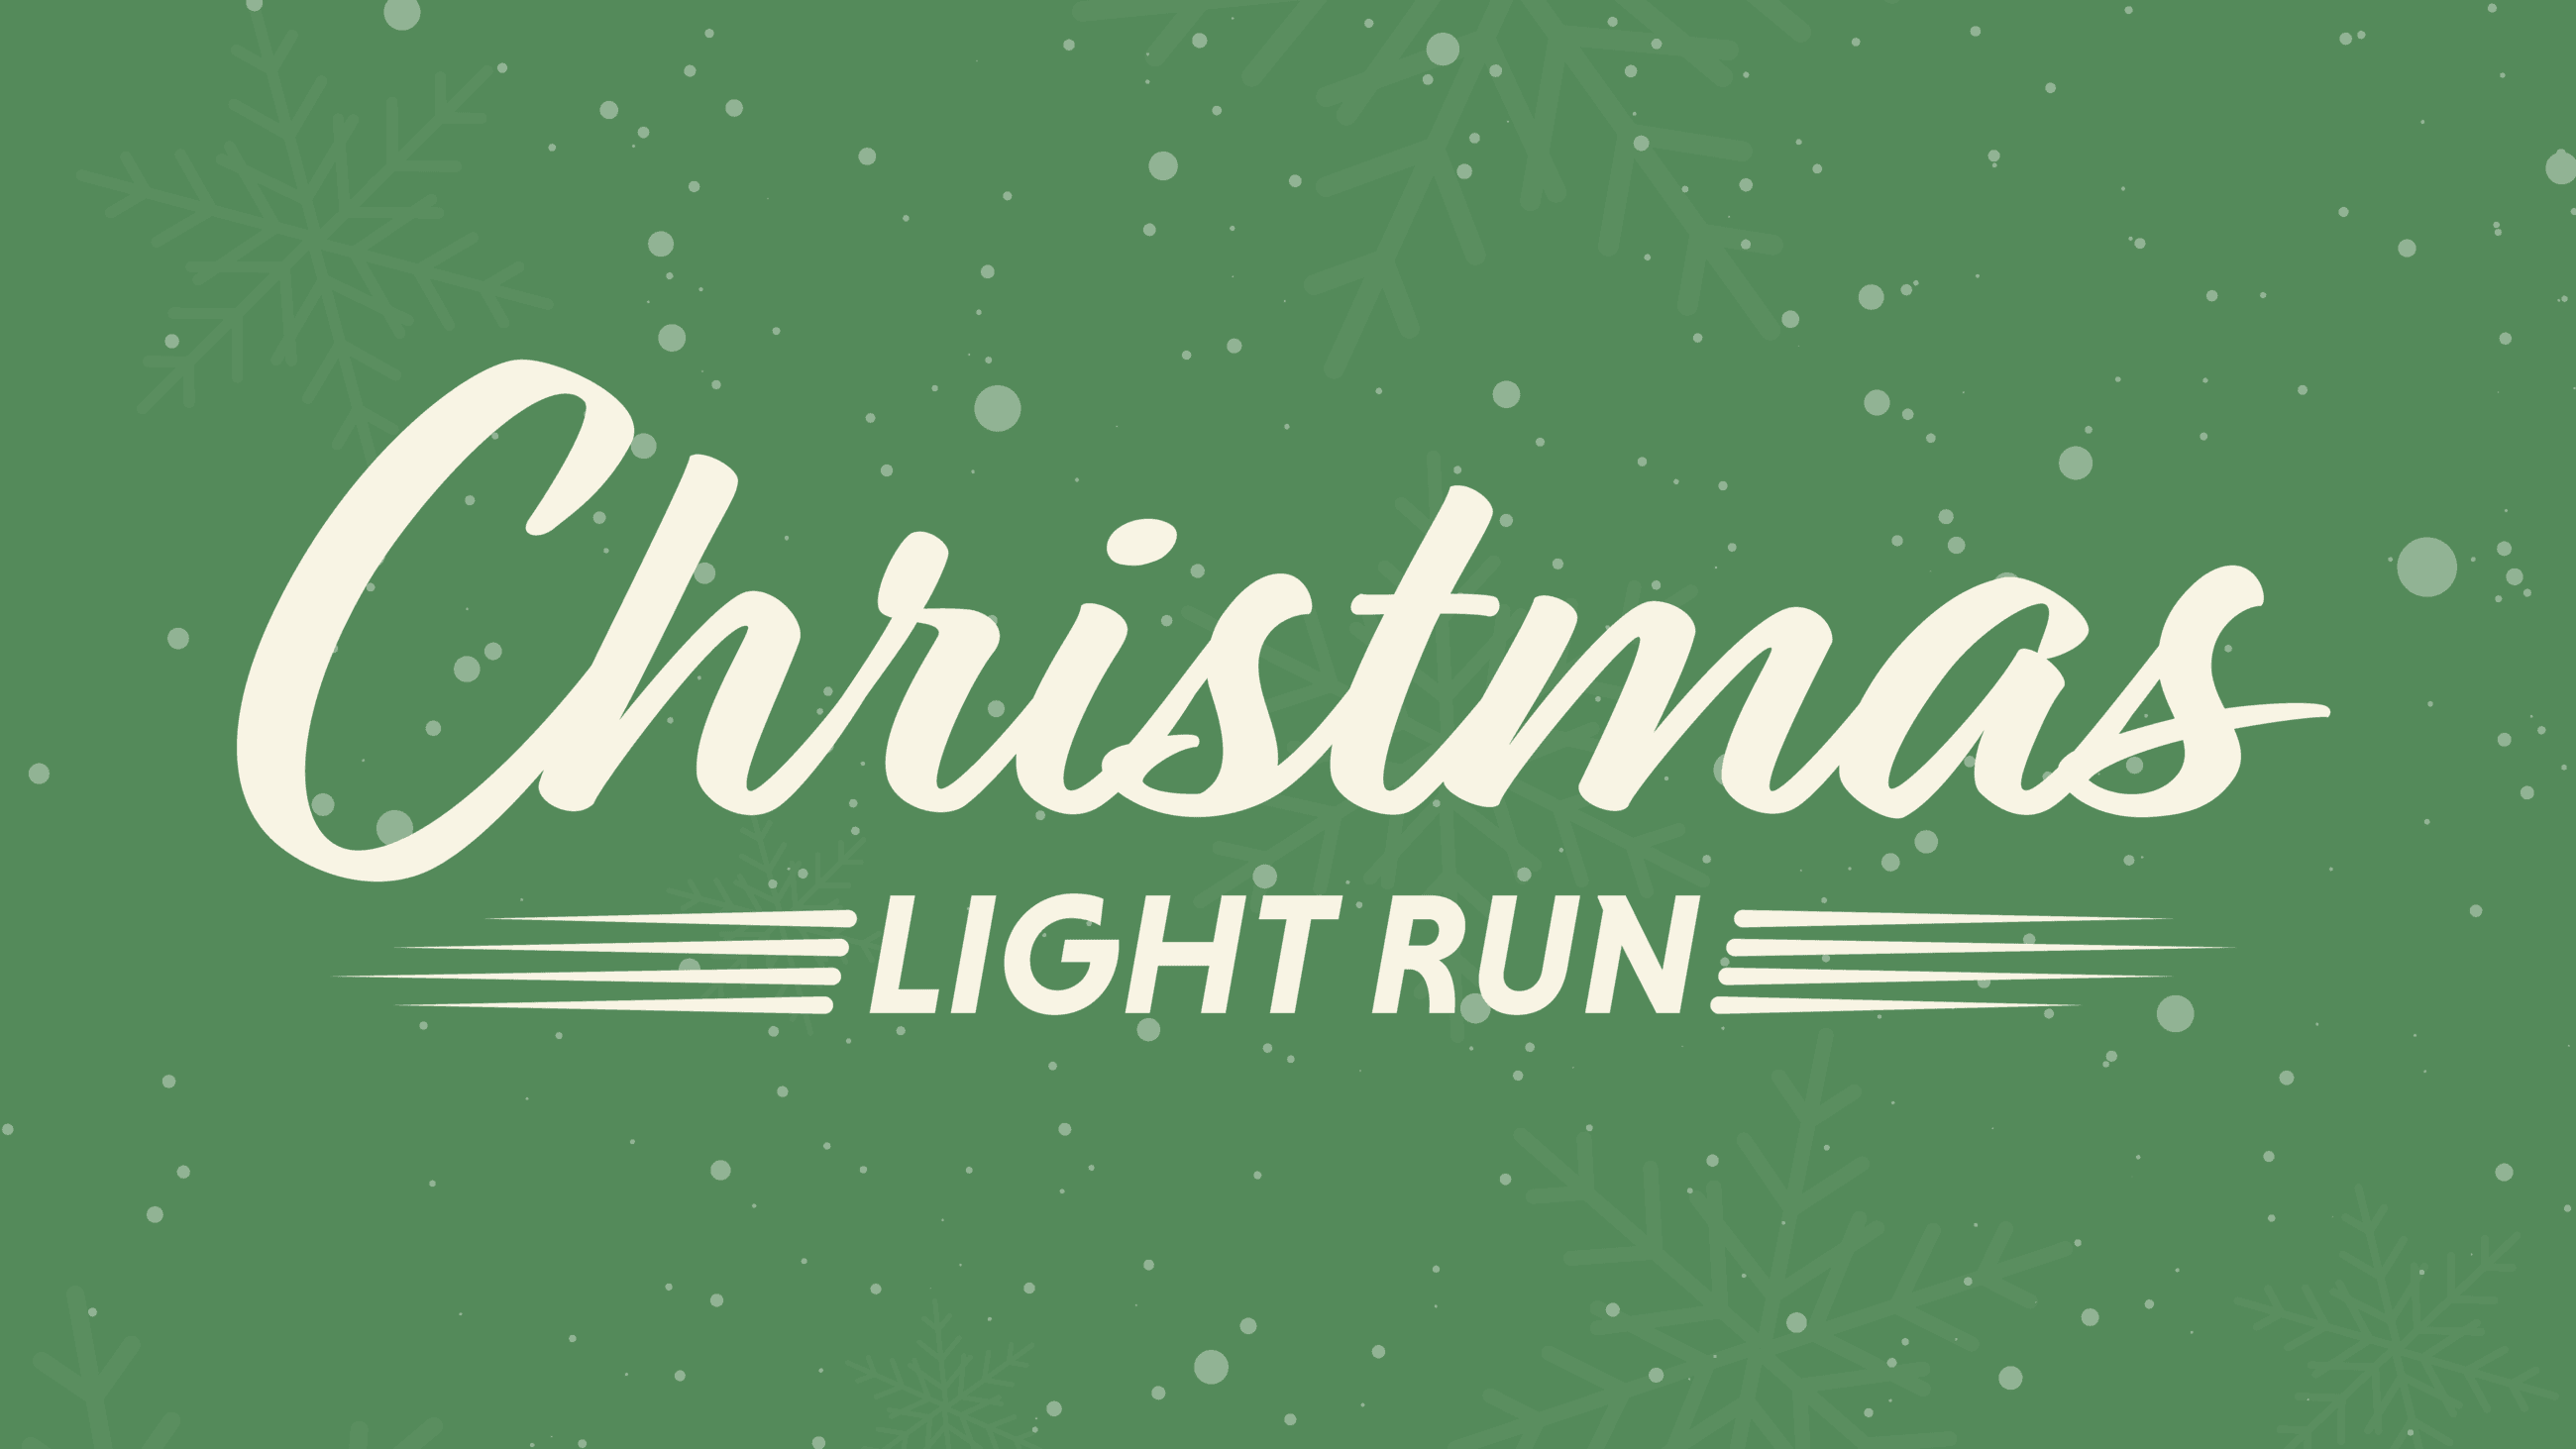 Christmas Light Run - Social Banner-01